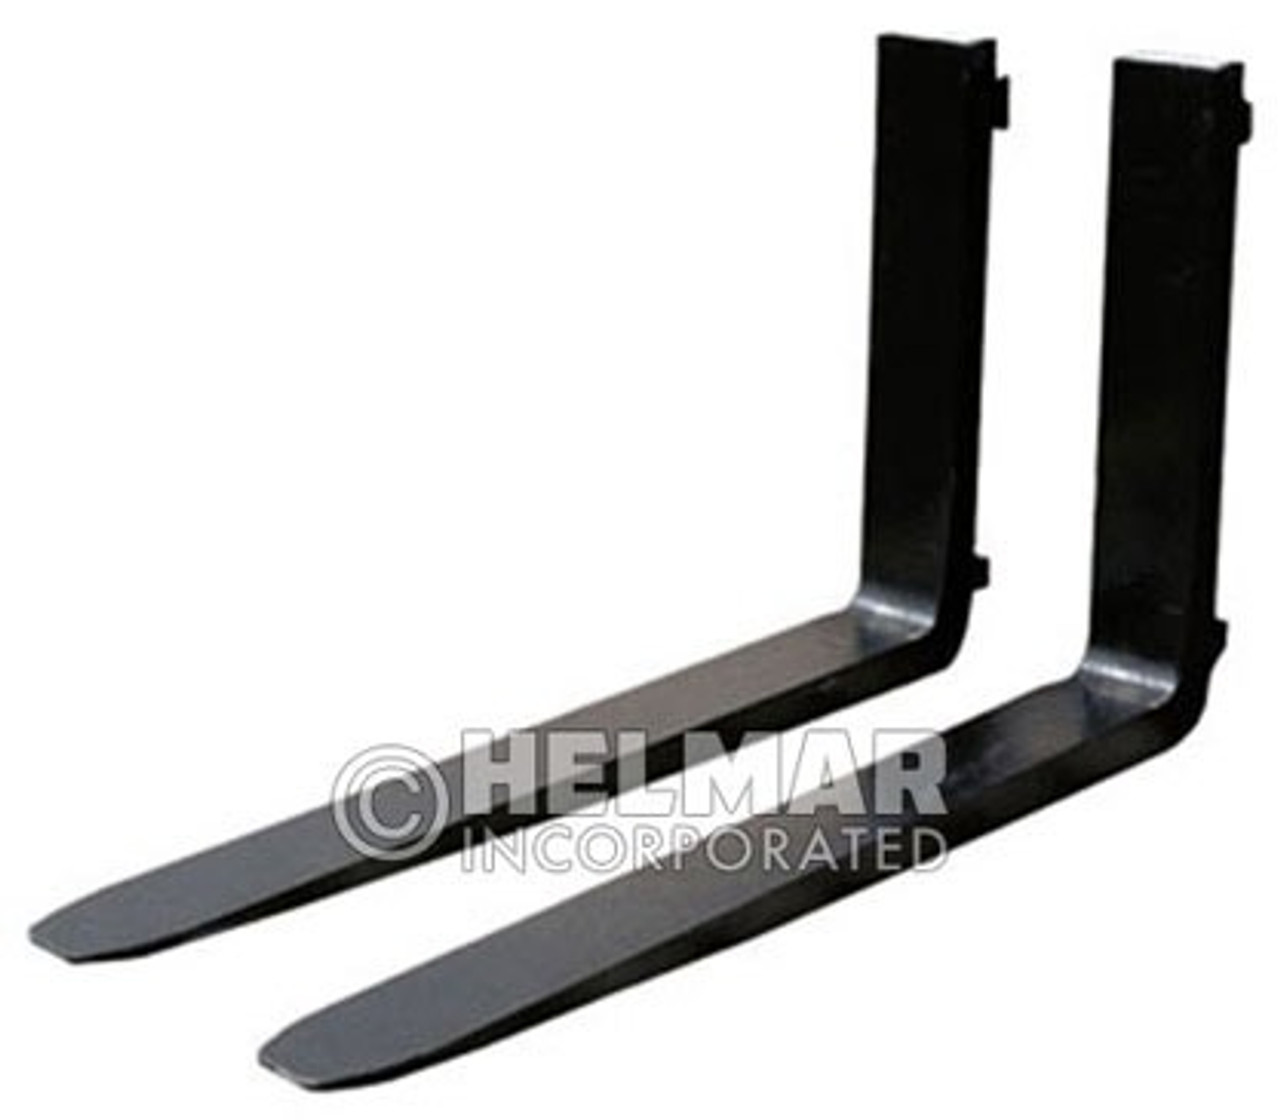 FORK-4122 Class II Full Tapered Polished Liftruck Forks 1 3/4 x 5 x 60, 156 Lbs.